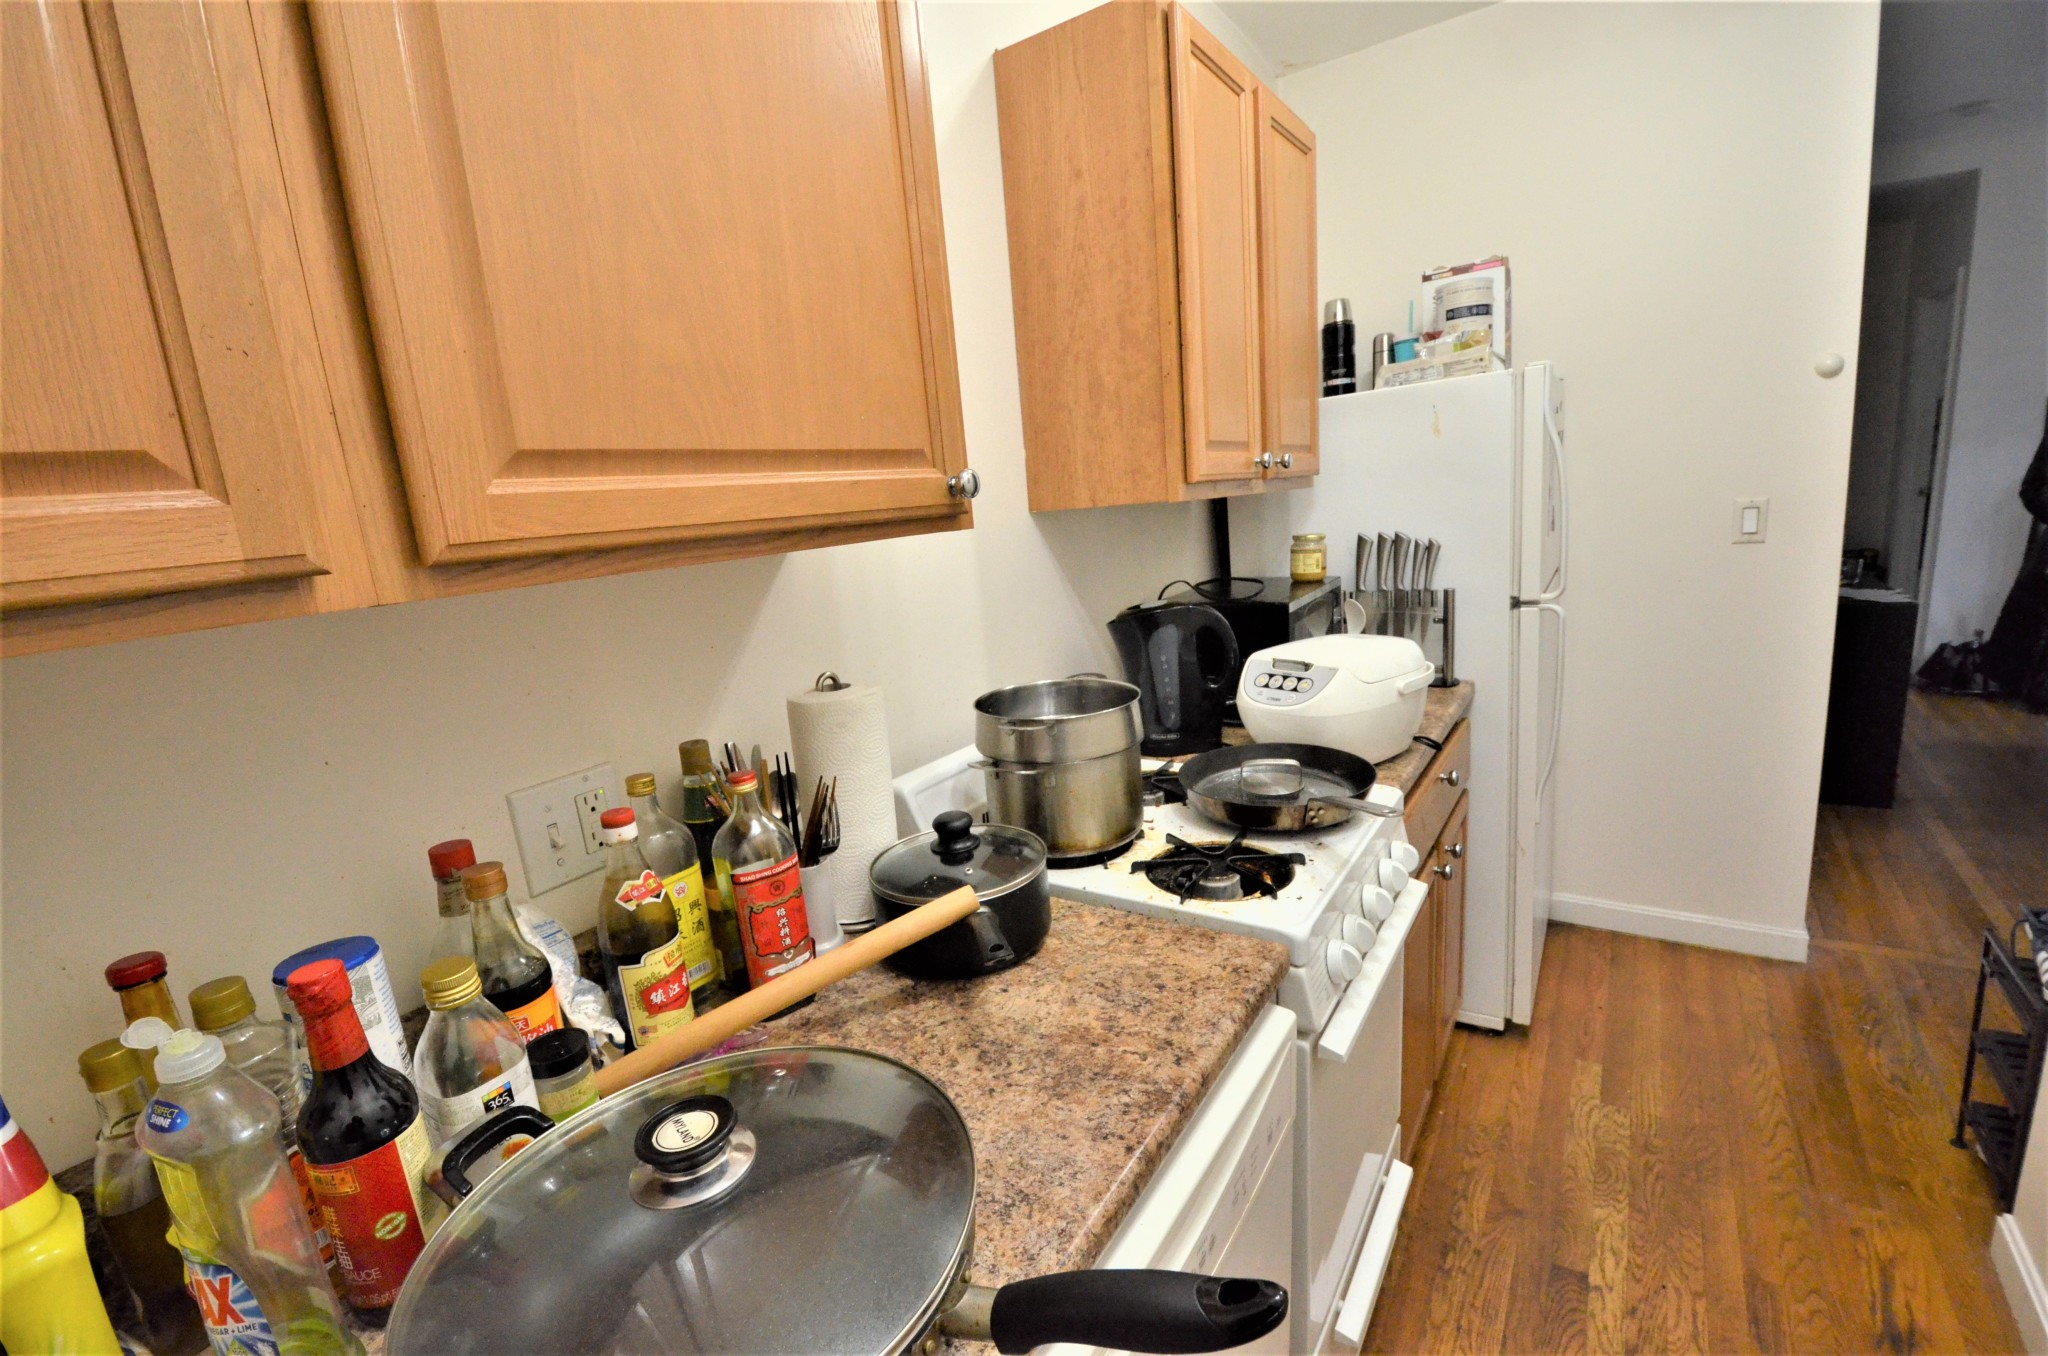 AVAIL 9/1 - Gorgeous, Spacious, Updated, Sunny 2 Bedroom on Westland